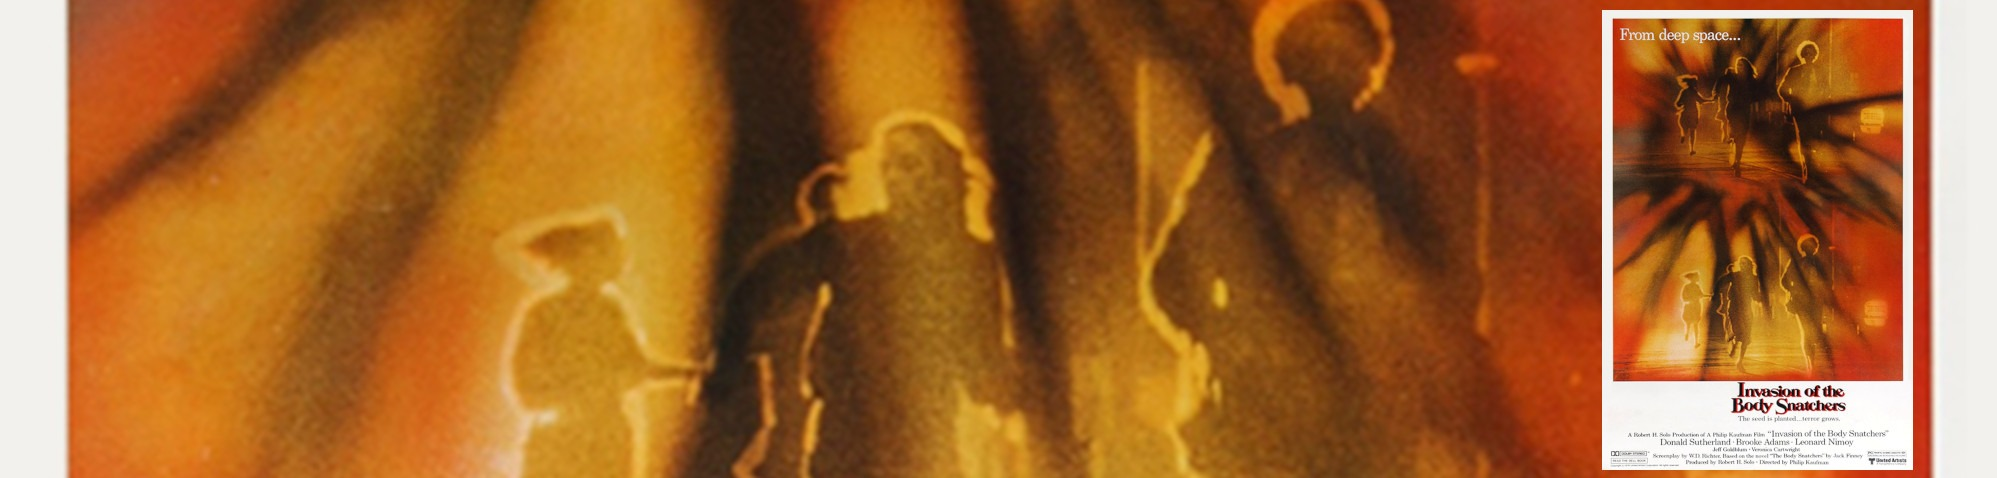 Body Snatchers78 Banner